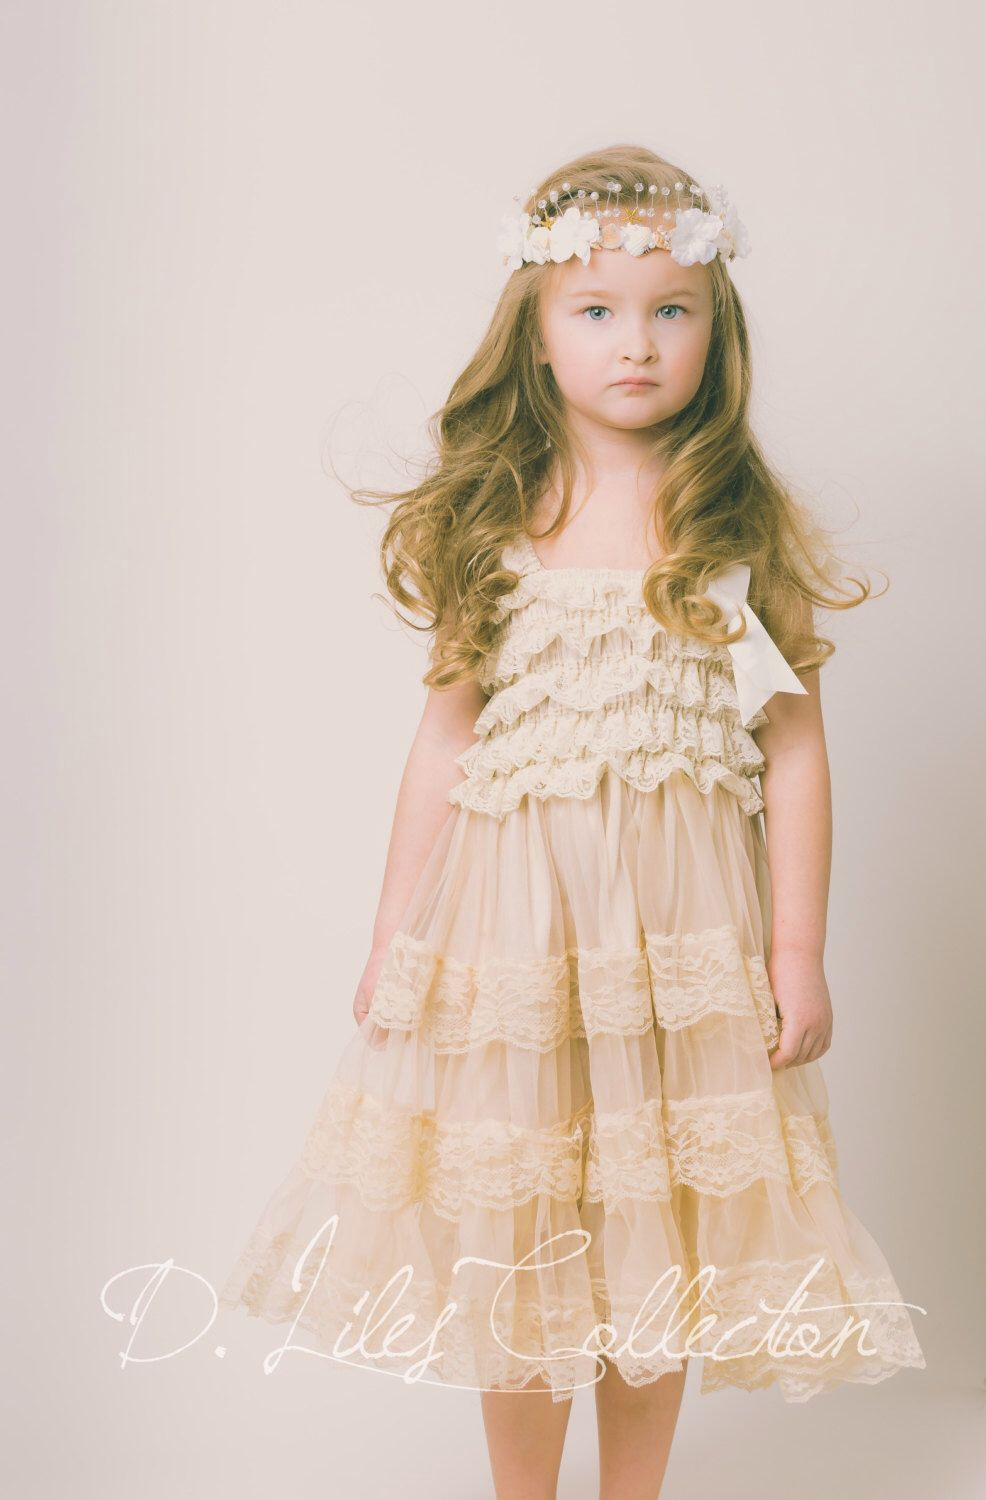 Champagne Lace Flower Girl DressIvory Lace Baby Doll DressRustic